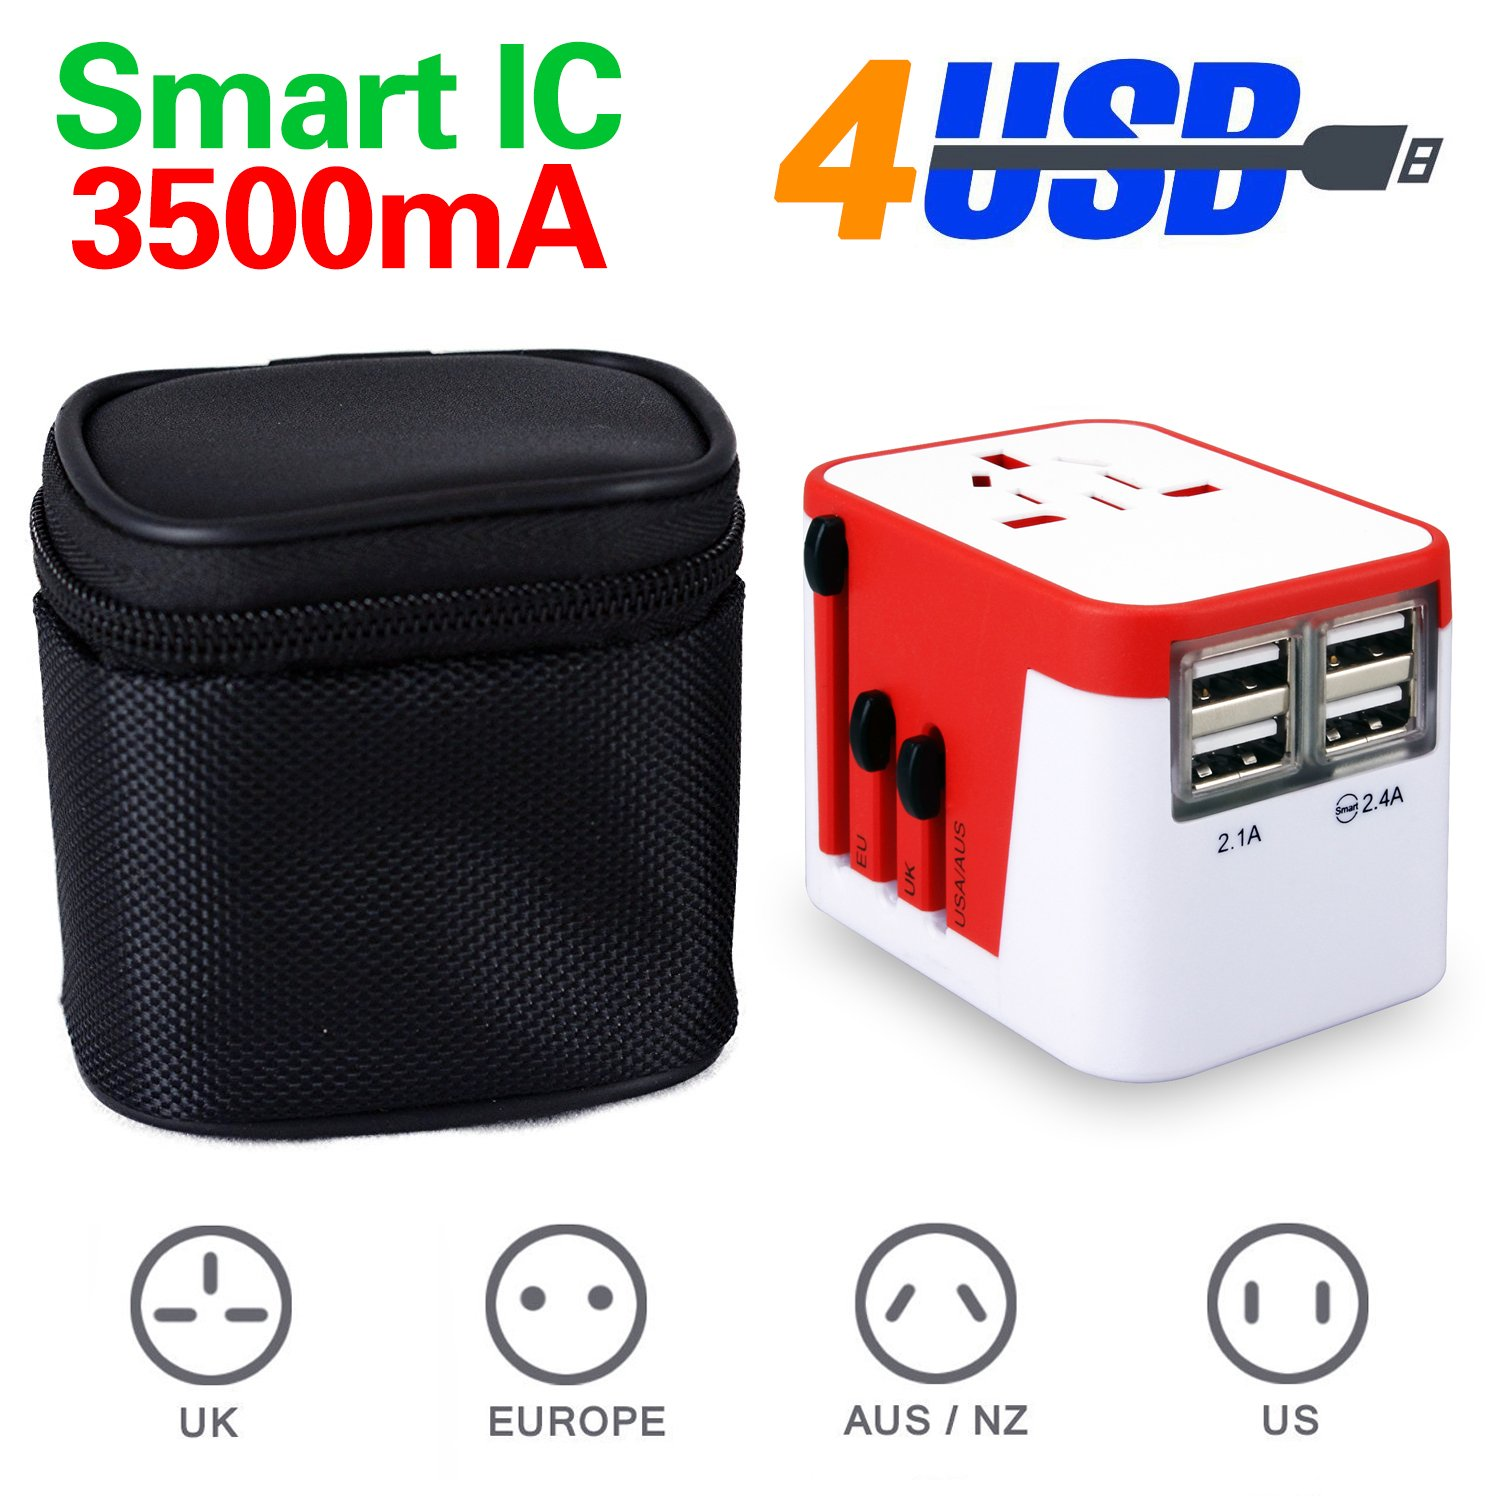 Universal World Travel Adapter Kit, All in One 4 USB Worldwide Charger - UK, US, AU, Europe Plug & Converter - Over 150 Countries & USB Power Adapter for iPhone, Android, All USB Devices Surge Protection (blue) Shenzhen Jinsheng Technology Co. Ltd.